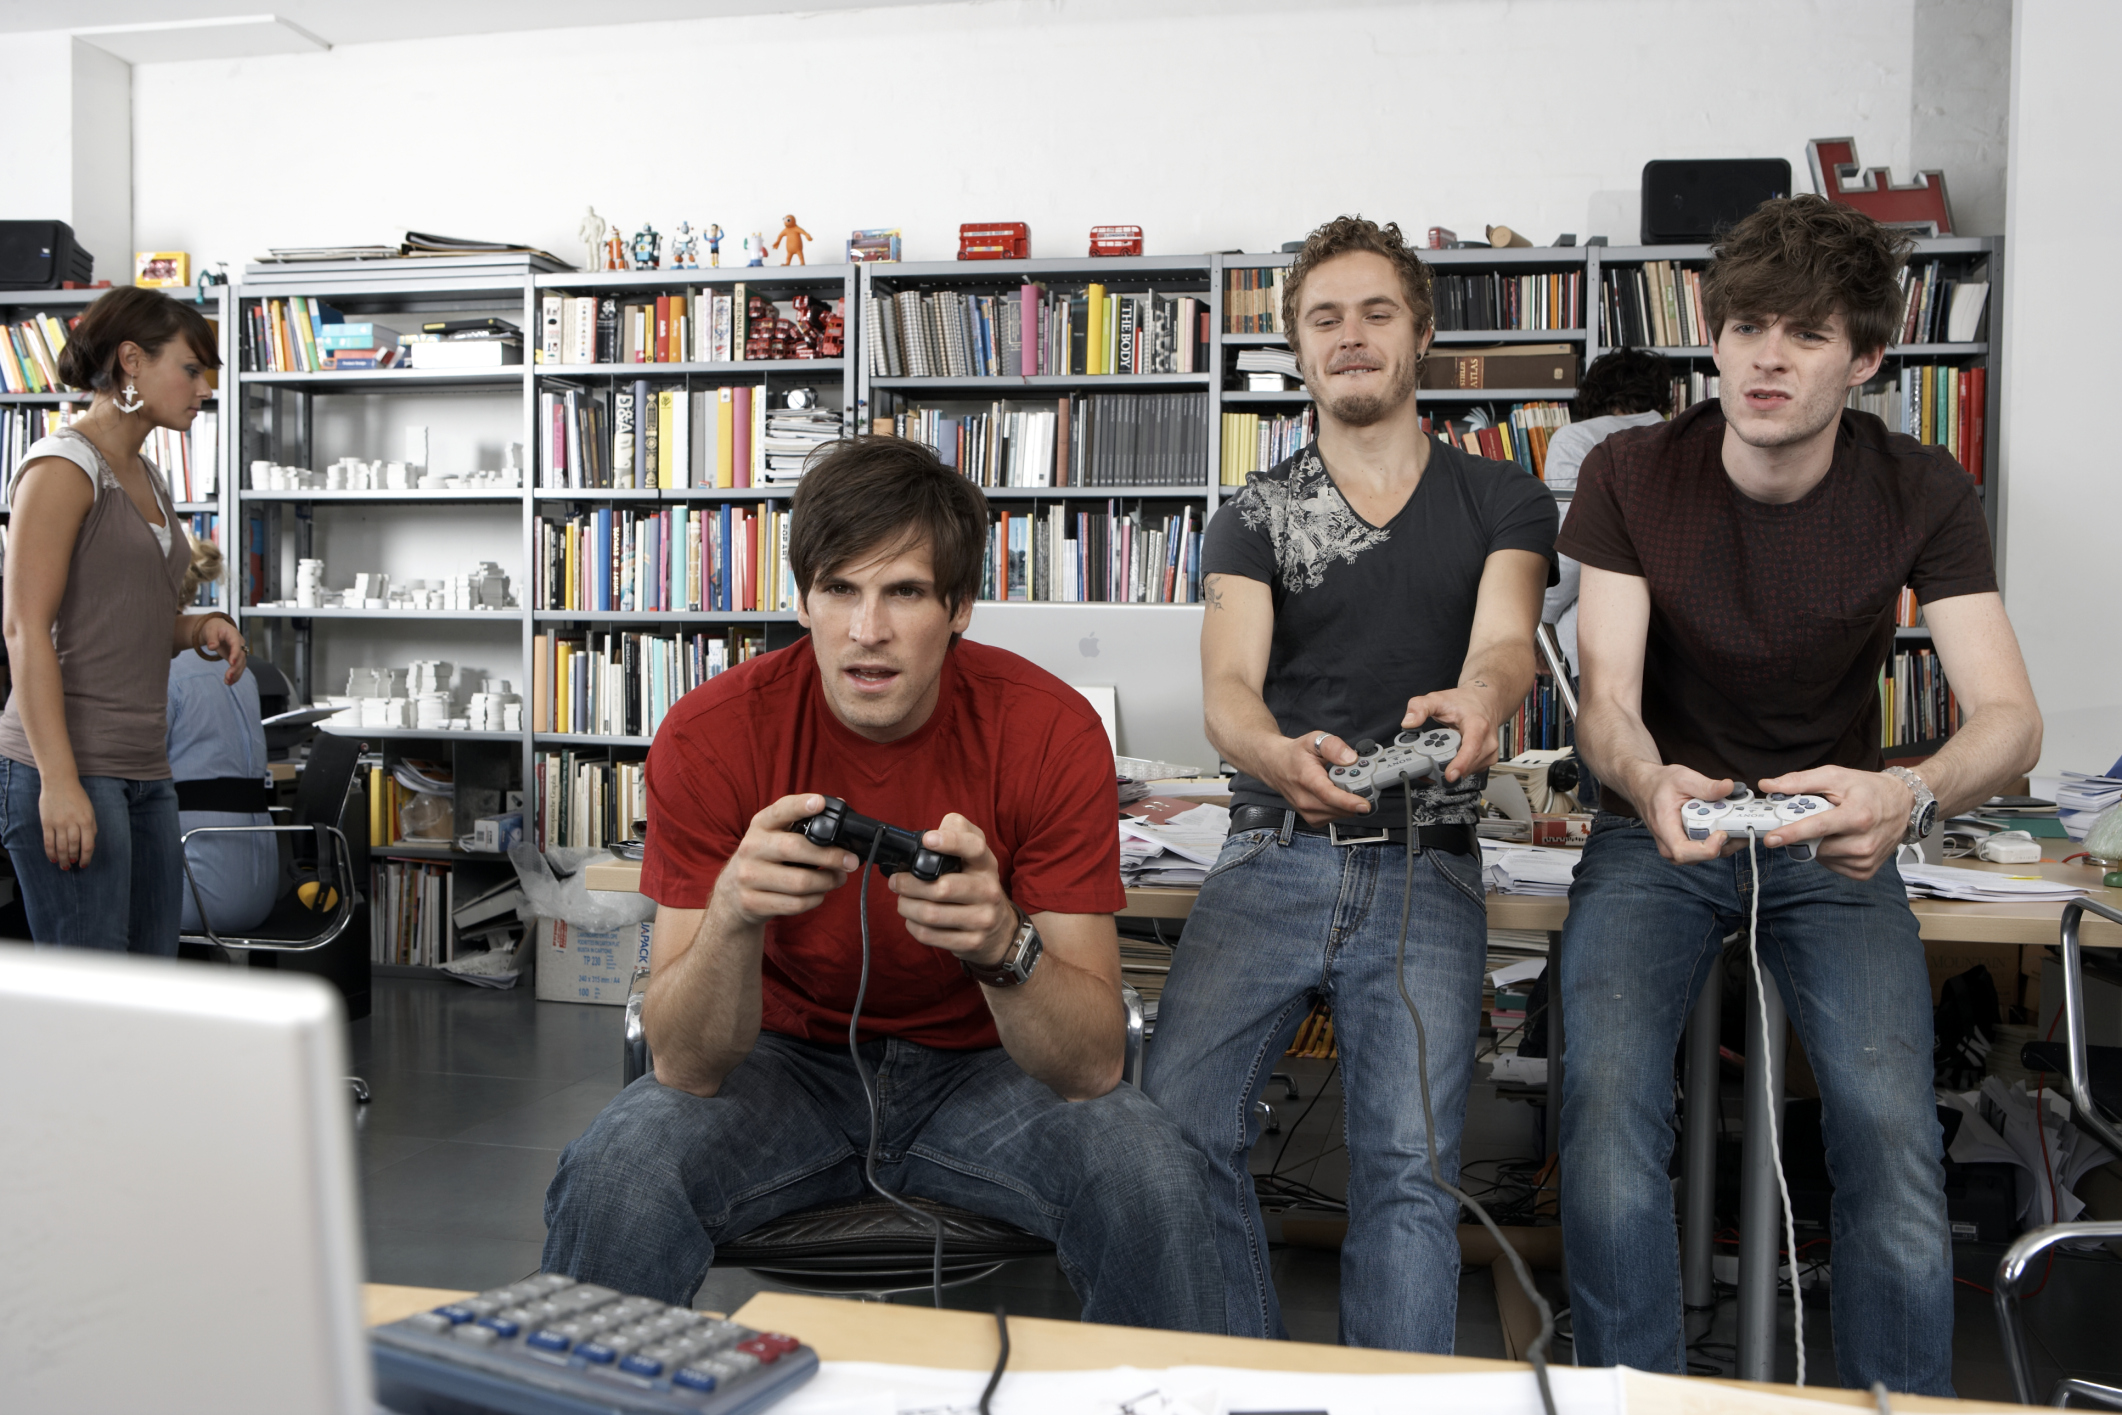 How To Apply For Video Game Tester Jobs